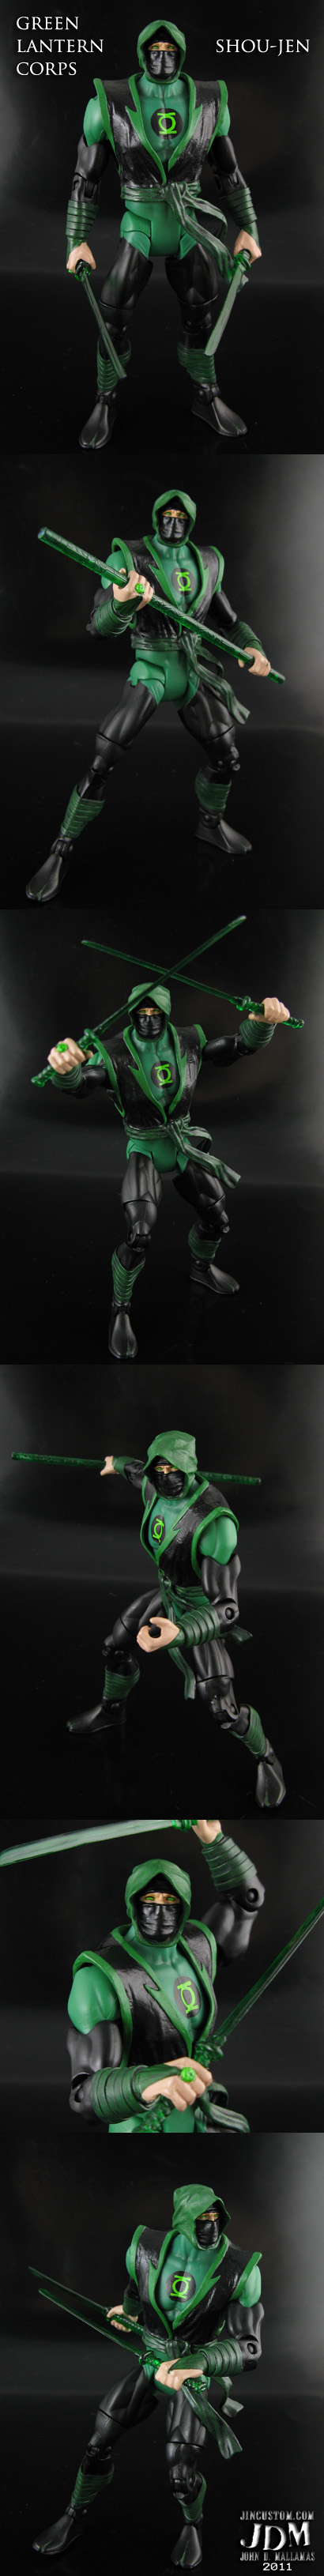 Custom Green Lantern Action Figure